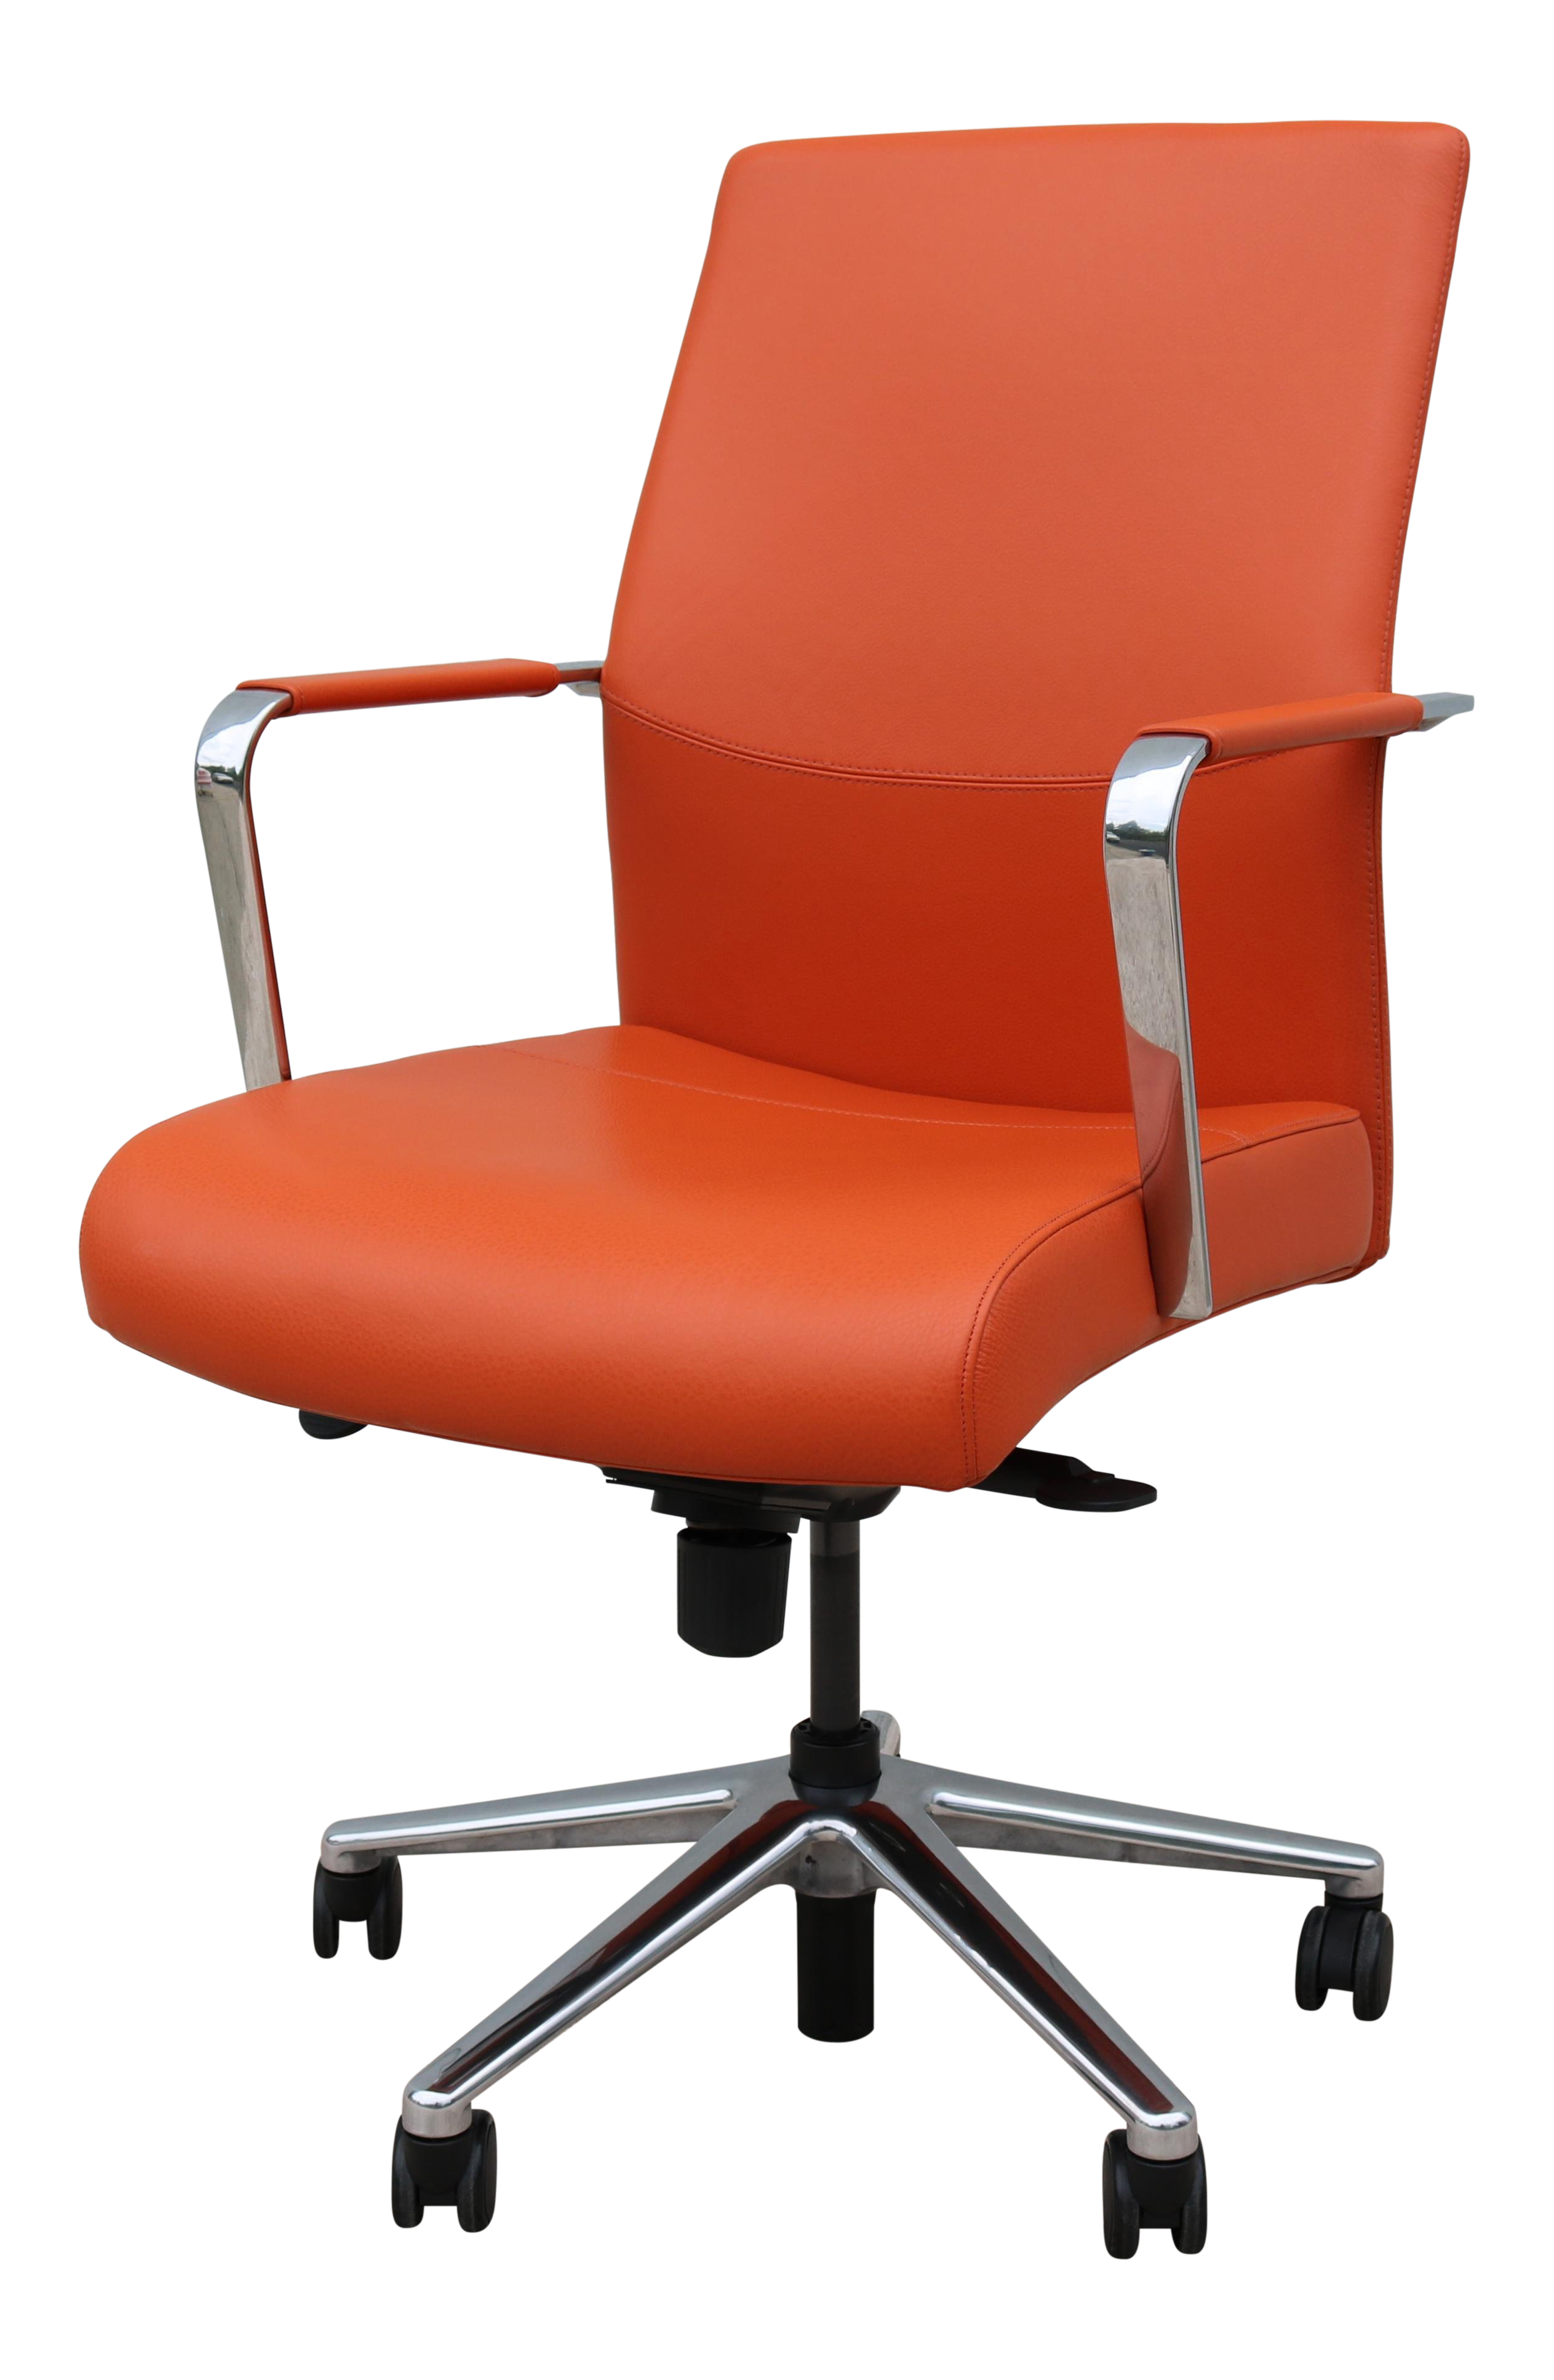 Strange Keilhauer Modern Vanilla Ergonomic Orange Leather Executive Desk Chair Caraccident5 Cool Chair Designs And Ideas Caraccident5Info